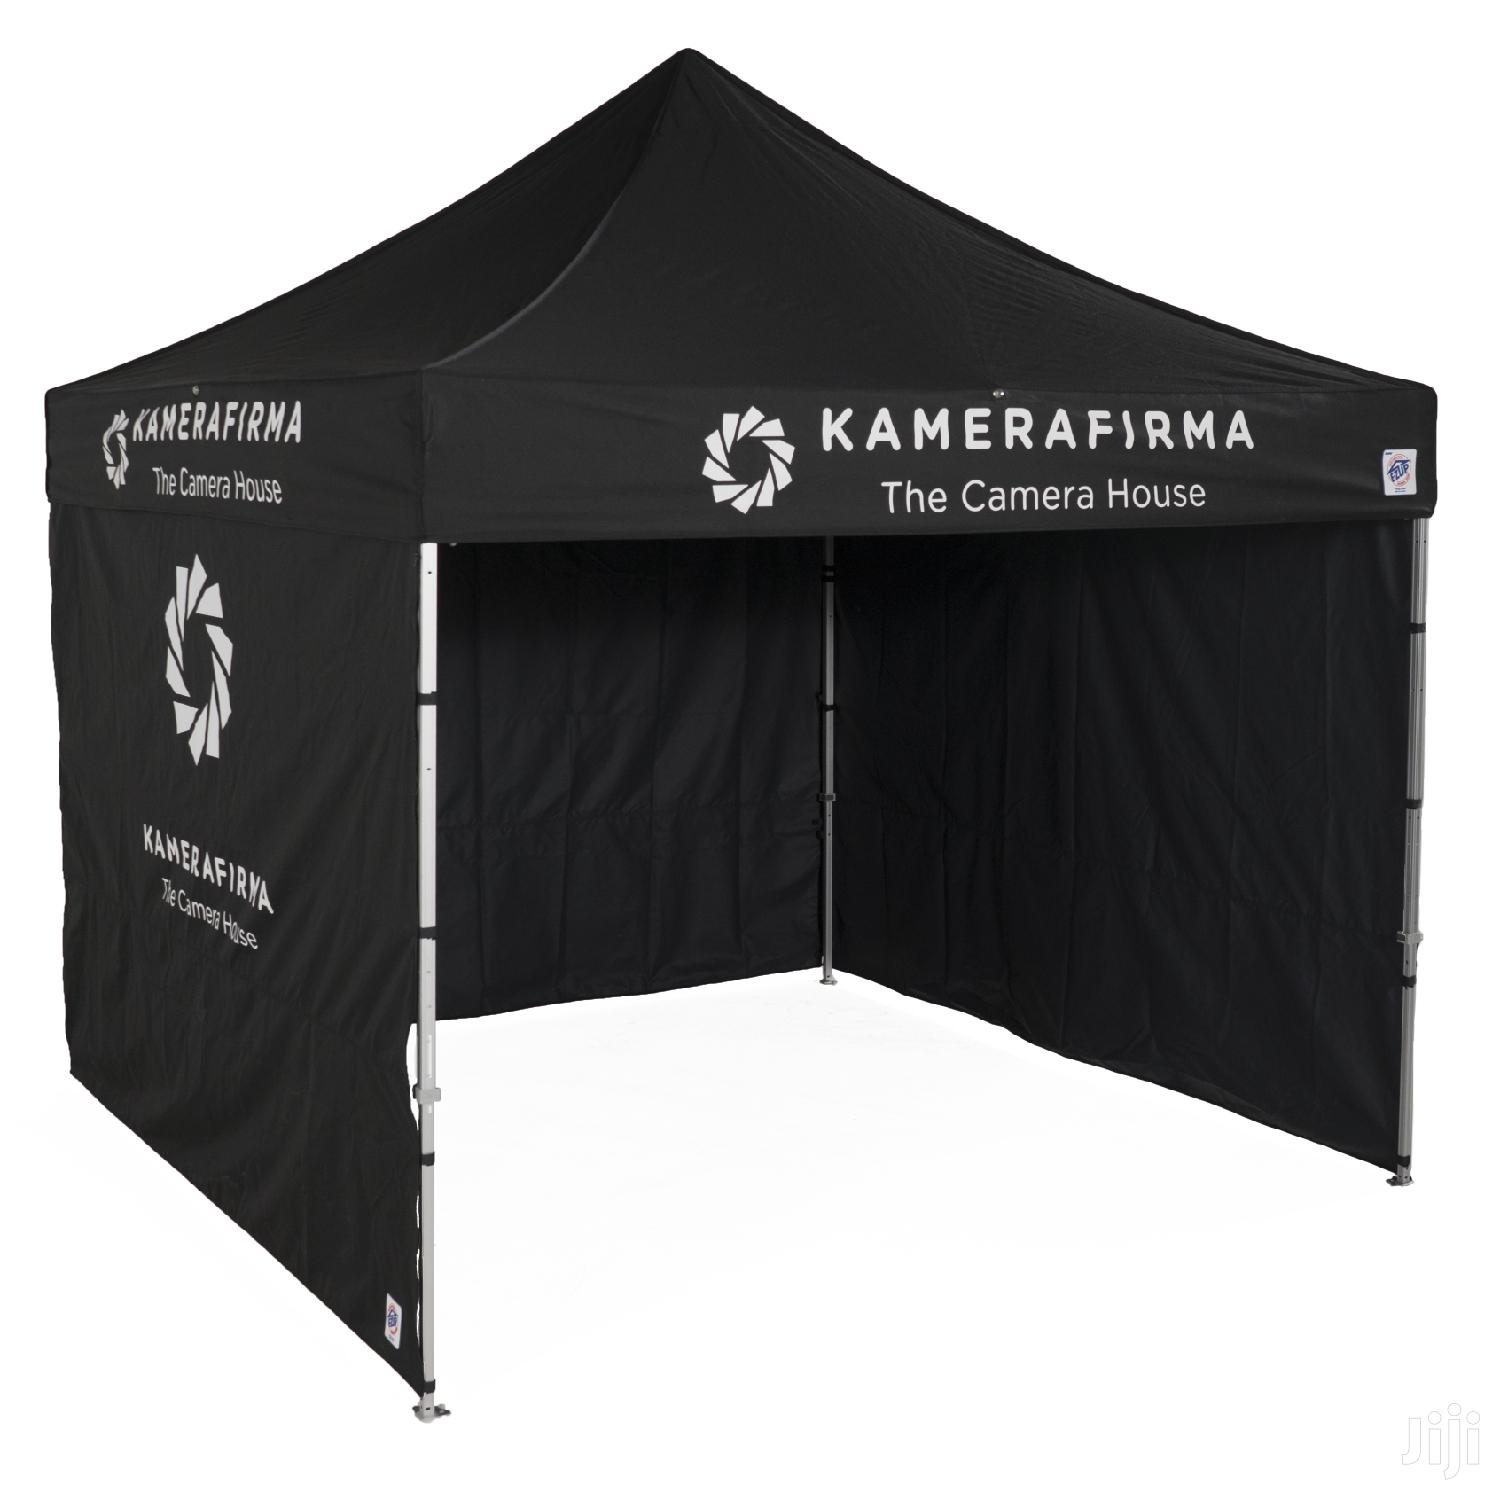 Event Tents | Party, Catering & Event Services for sale in East Legon, Greater Accra, Ghana